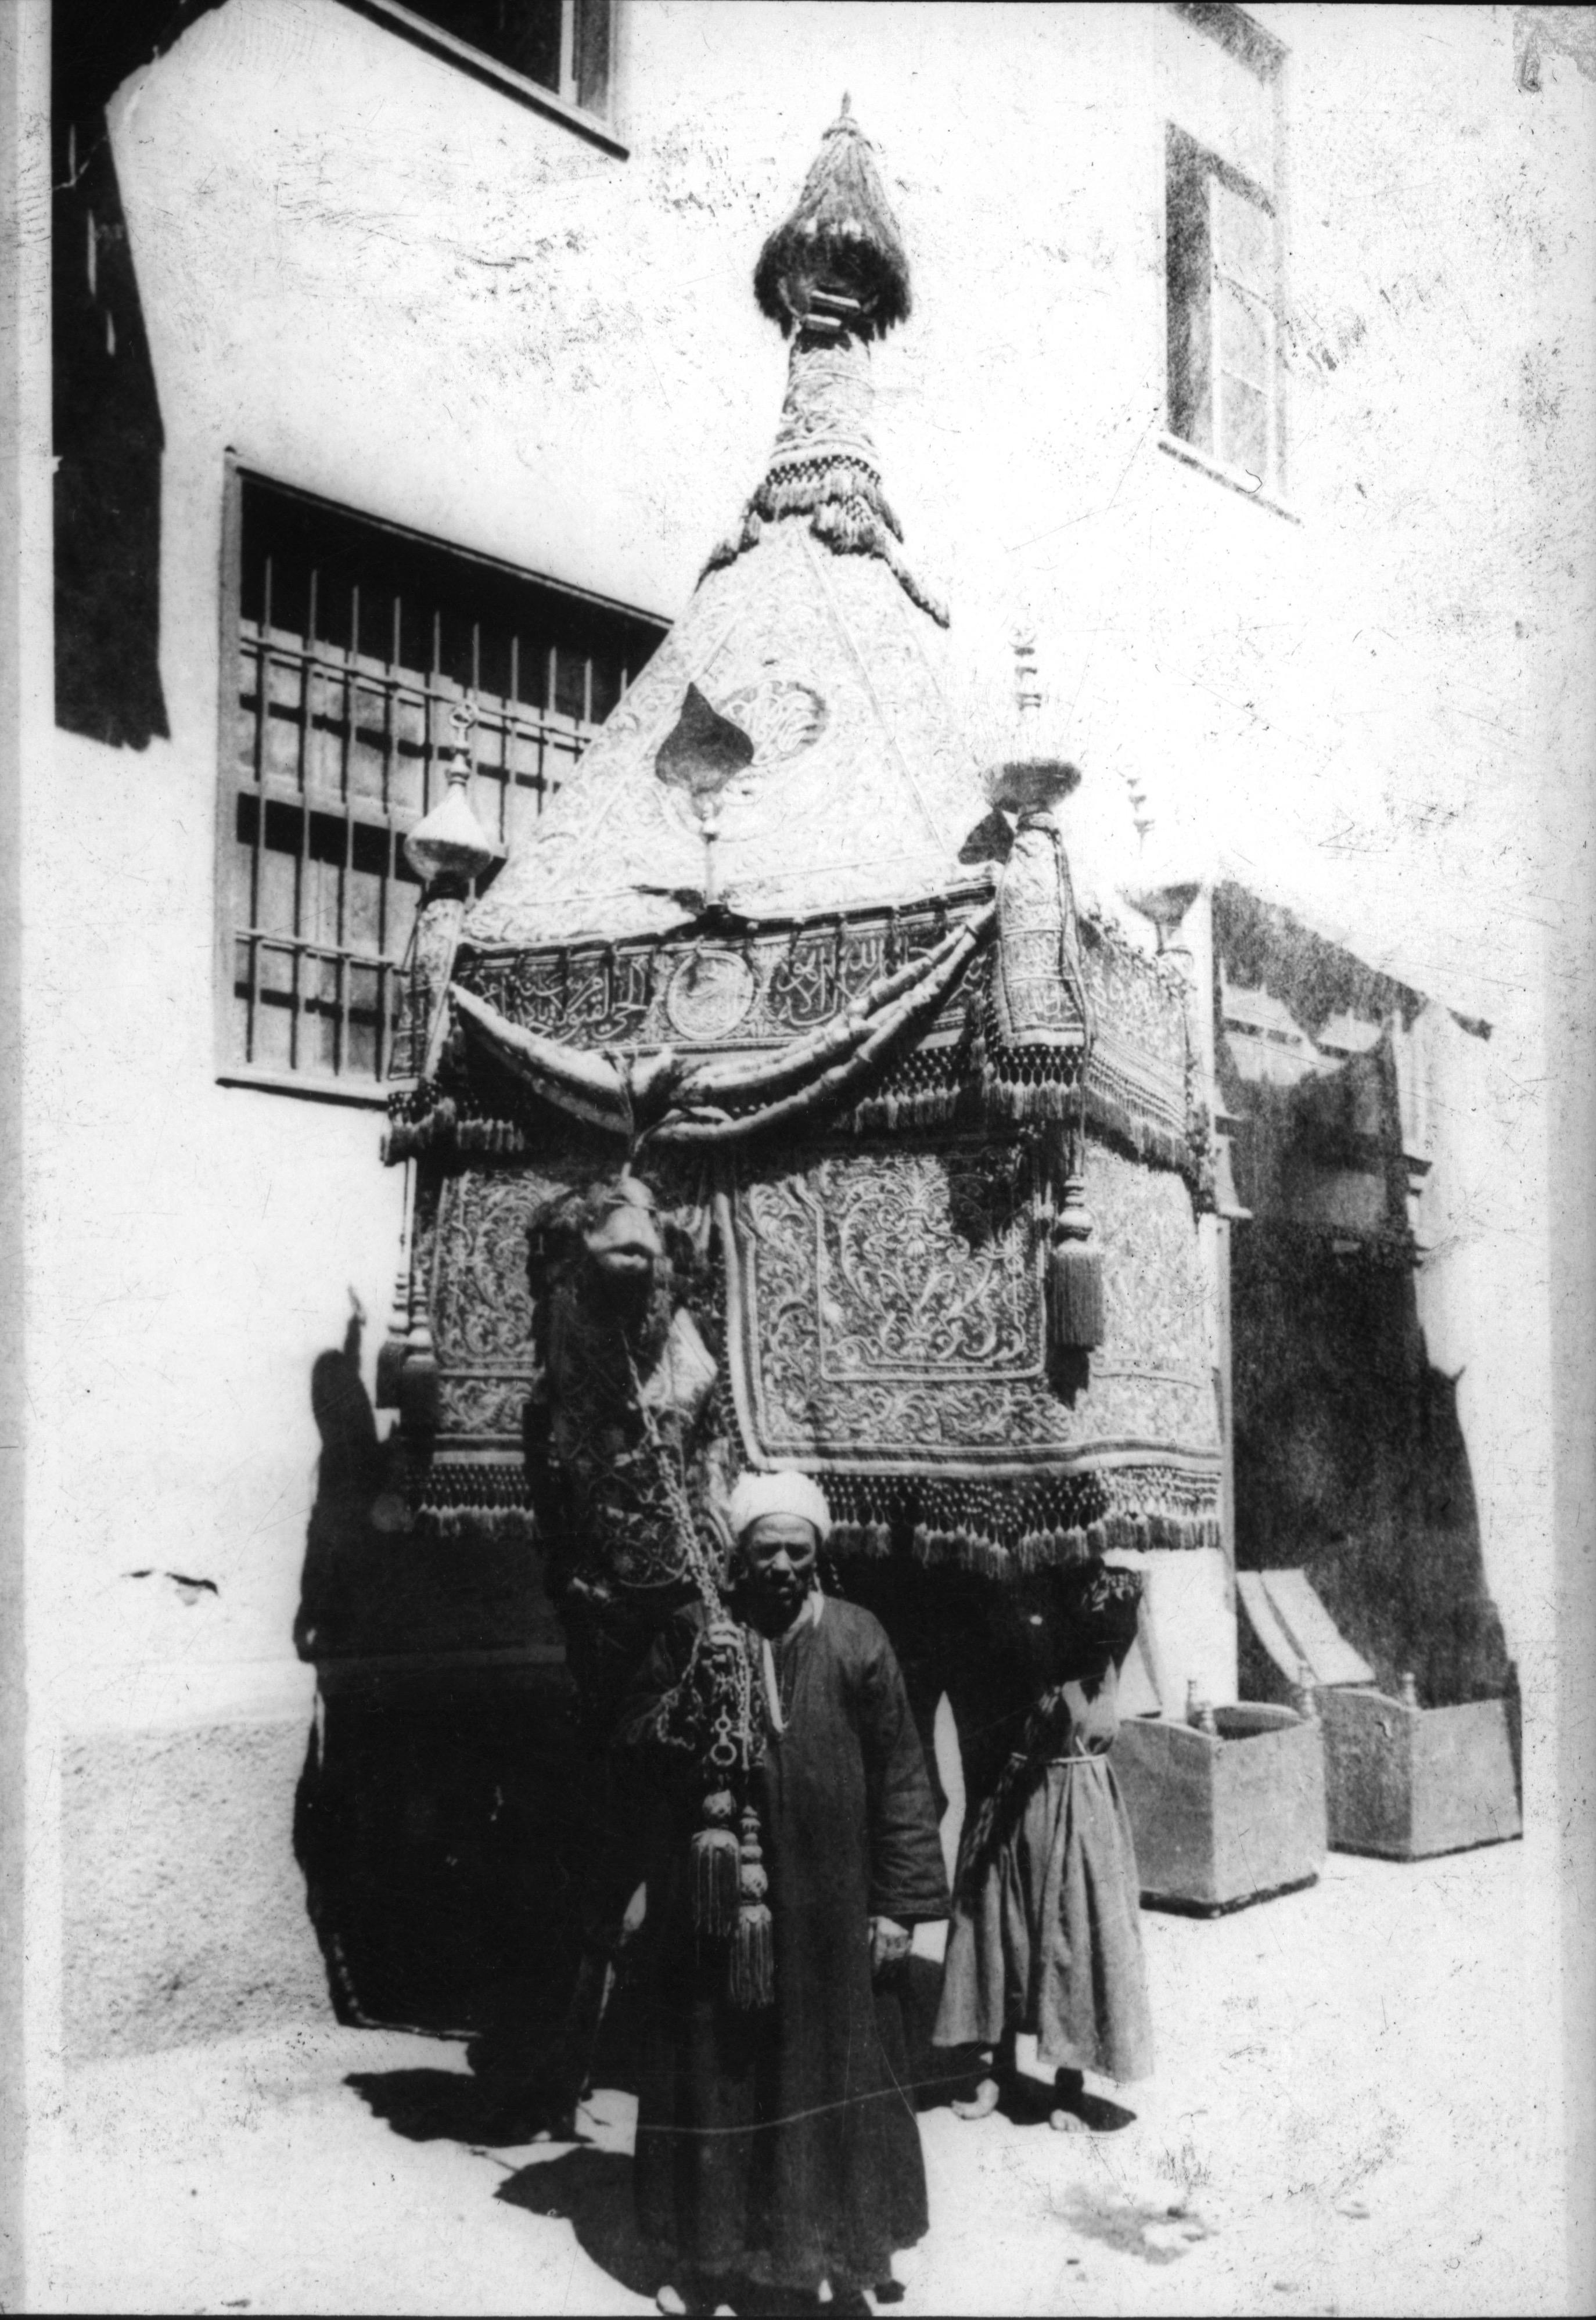 The mahmal on its camel with its caretaker in front of the Dar al-Kiswah